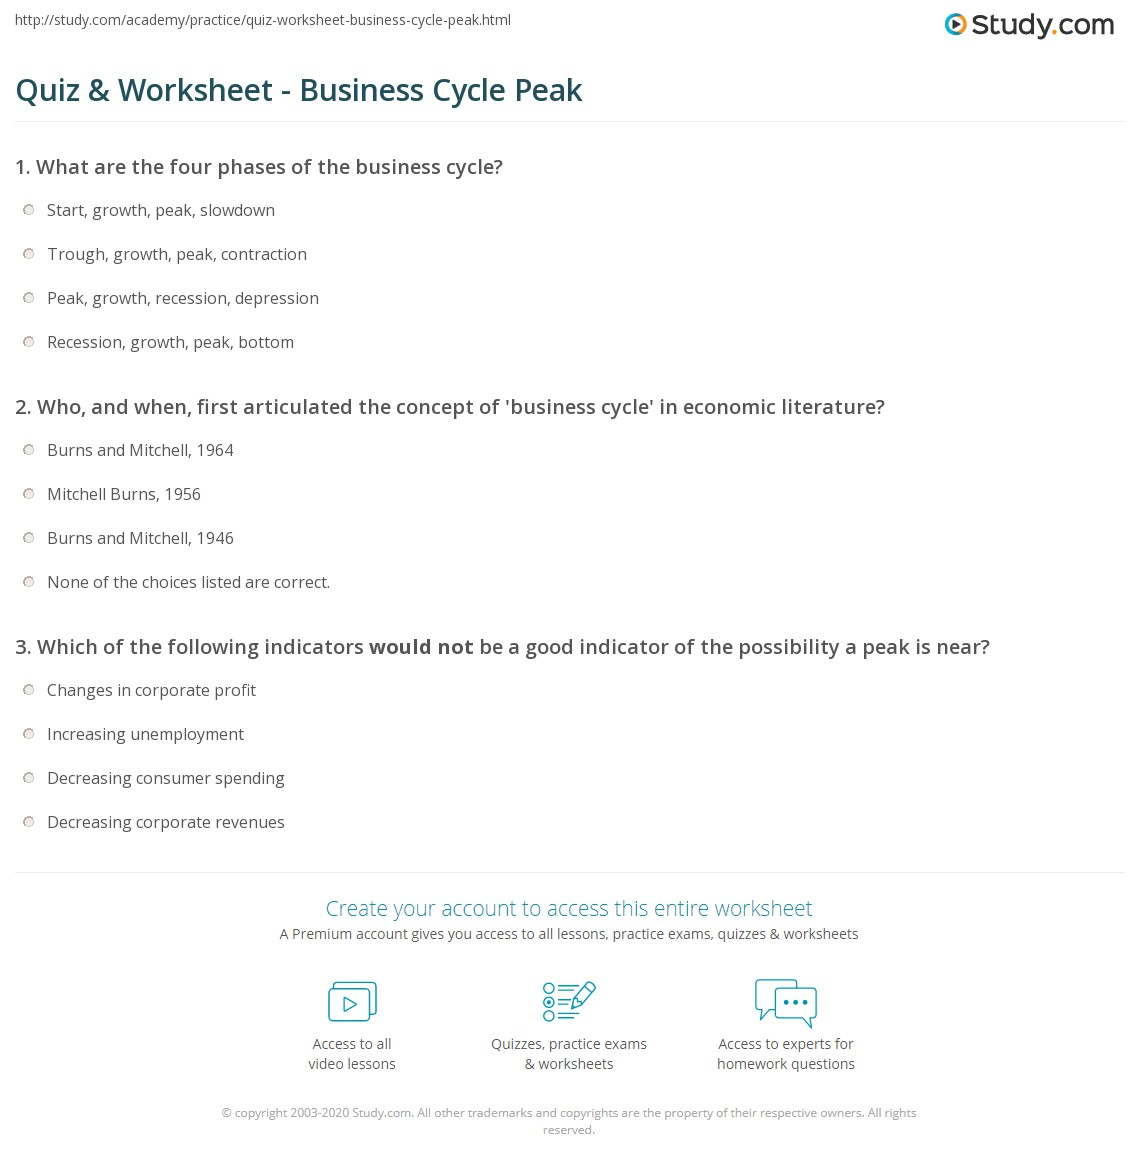 quiz worksheet business cycle peak. Black Bedroom Furniture Sets. Home Design Ideas